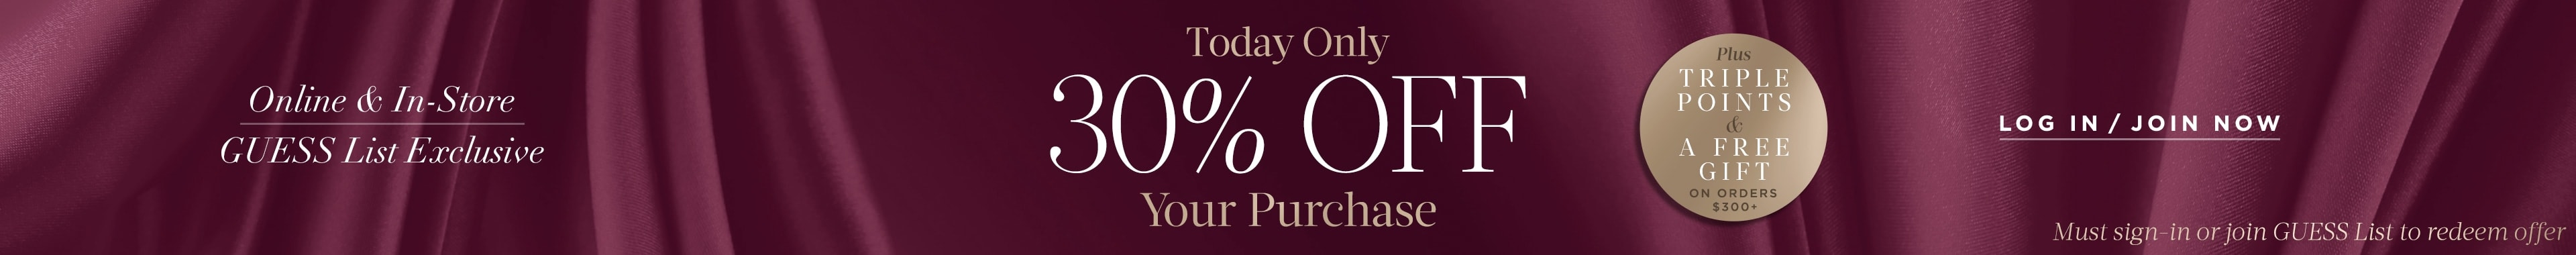 Today Only 30% Off your Purchase